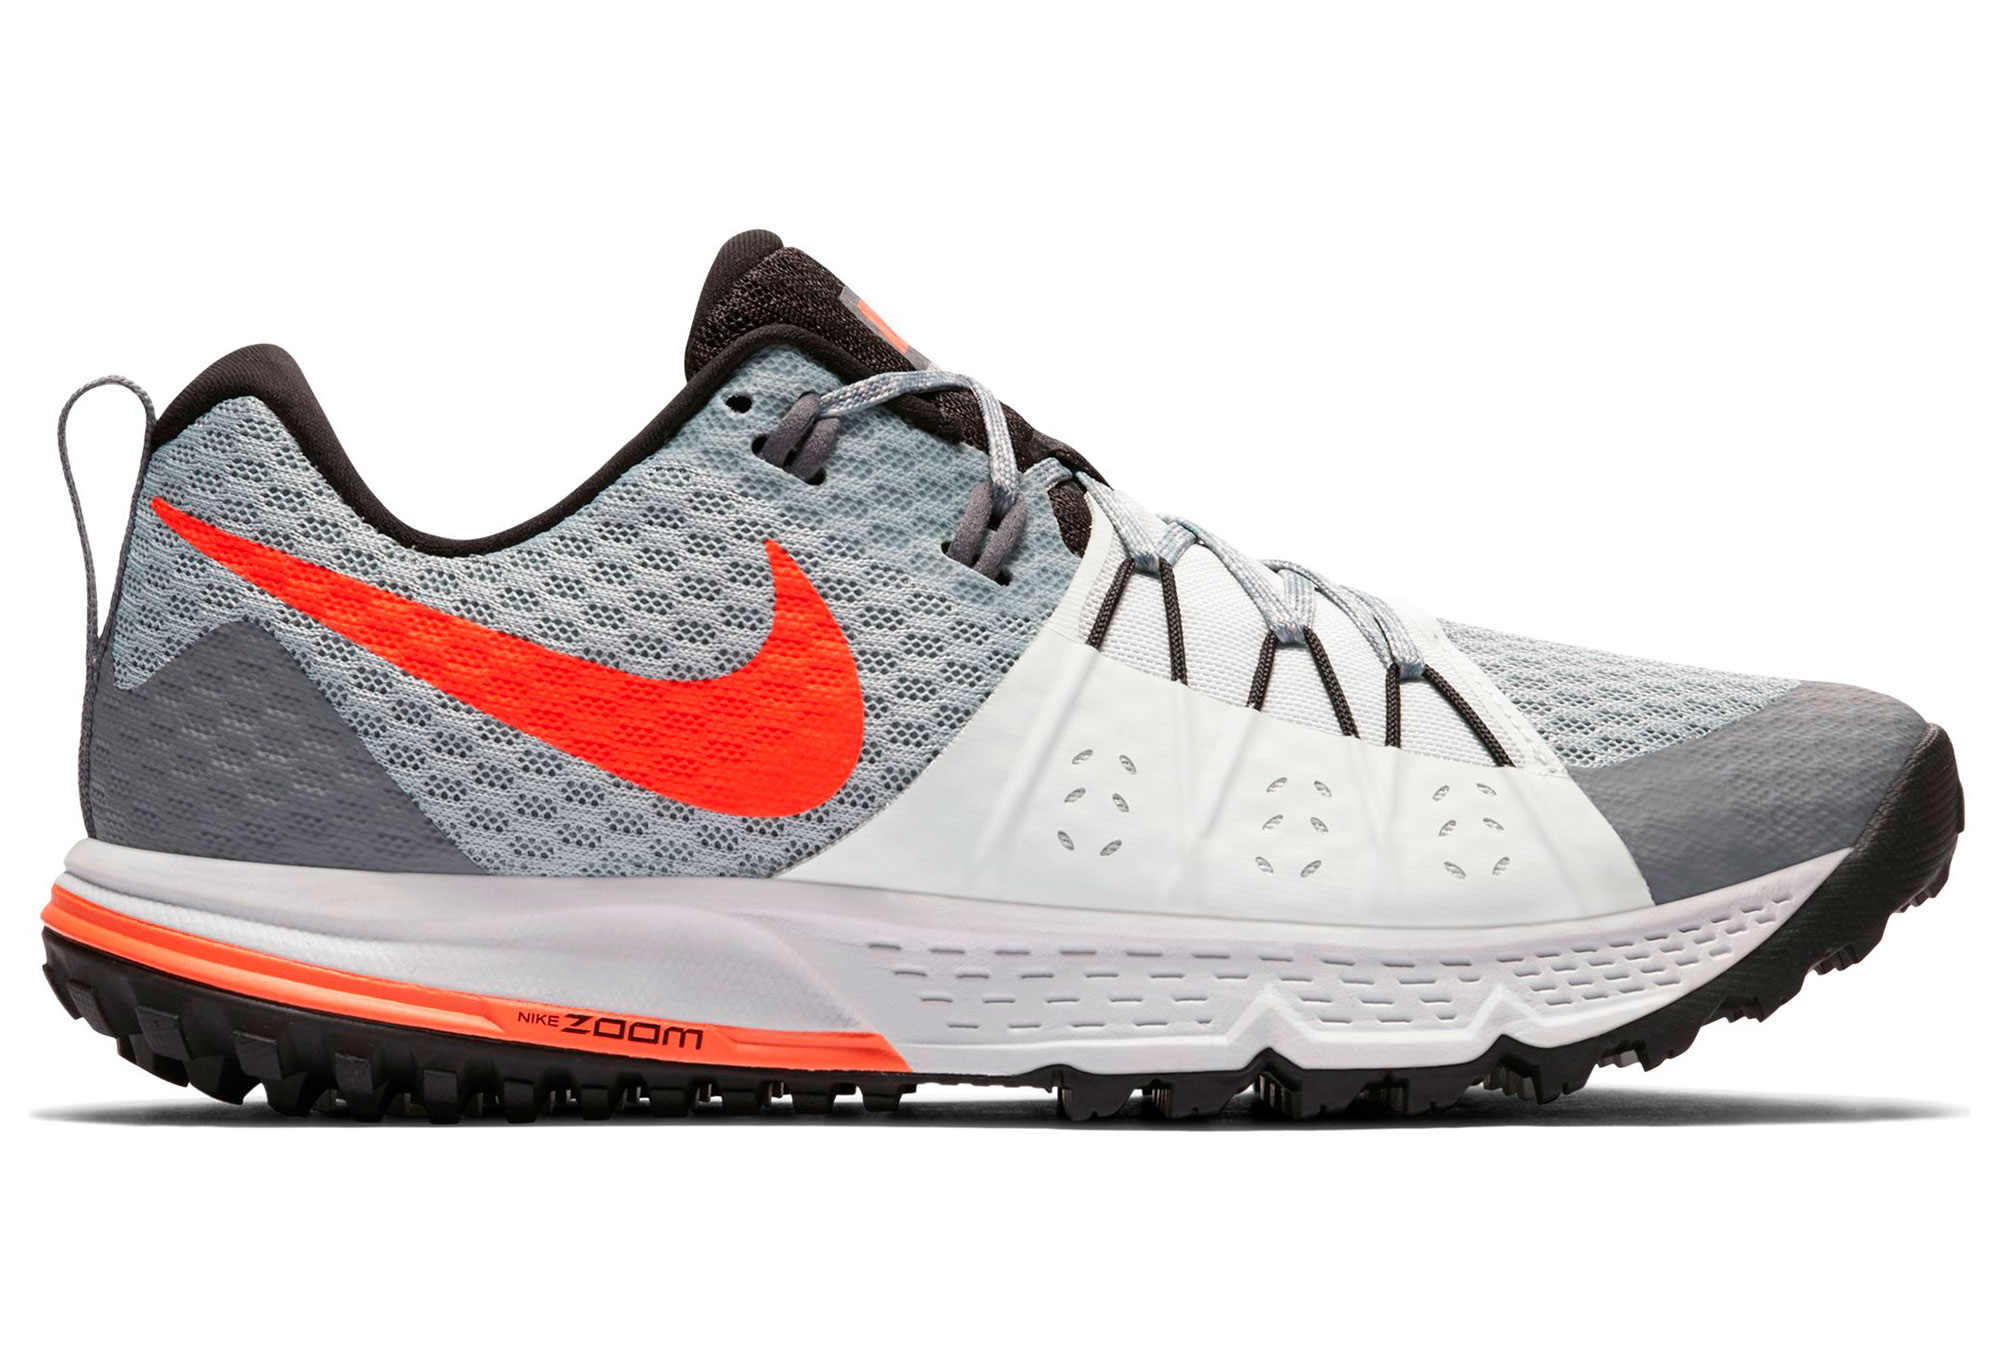 8ed6e6cf3c0 Nike Shoes Air Zoom Wildhorse 4 Grey Orange Women